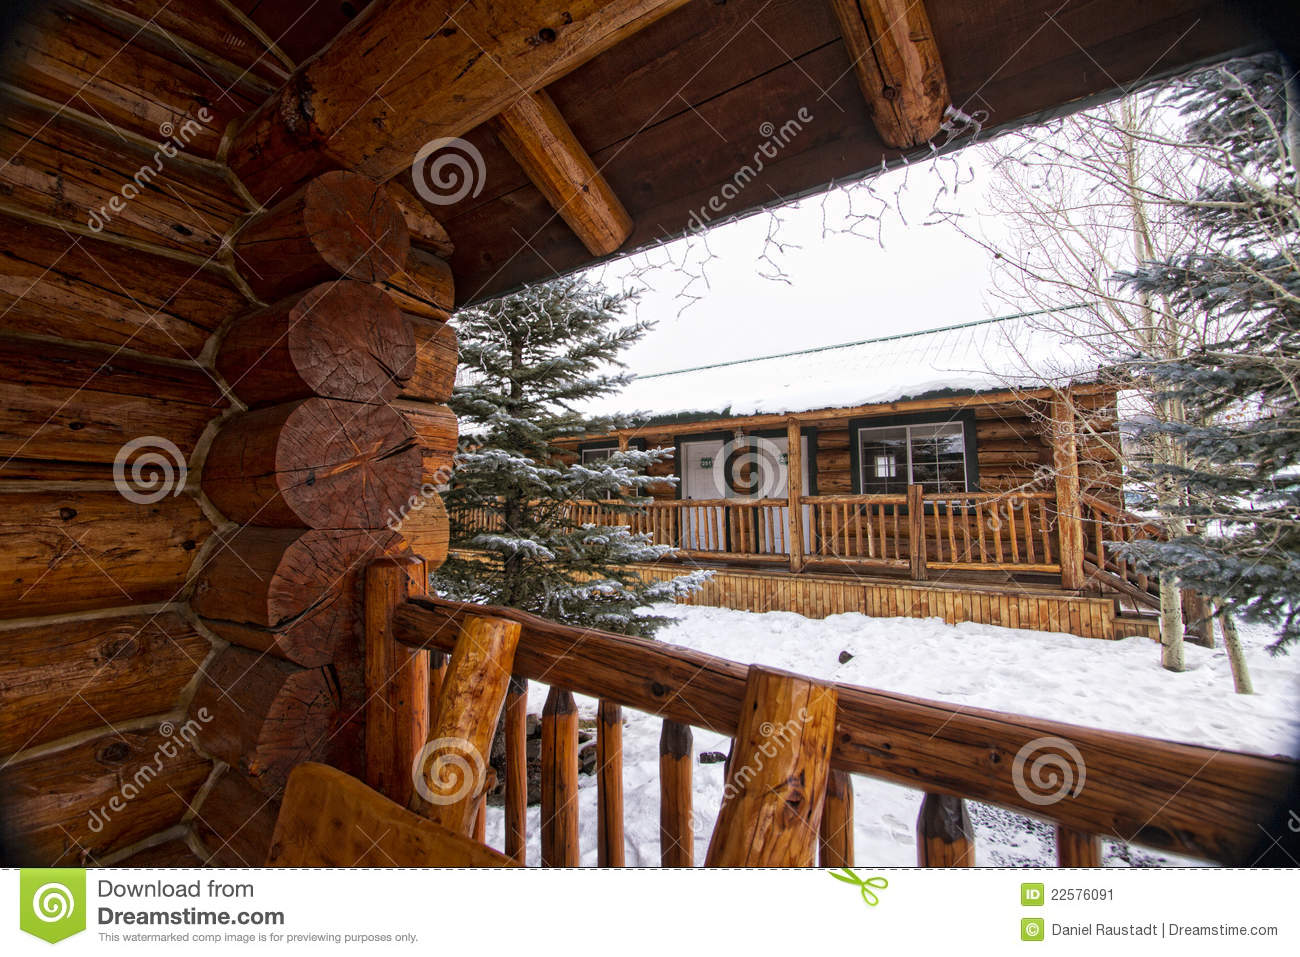 Log cabin in the woods winter - Royalty Free Stock Photo Download Modern Log Cabin Home In The Winter Woods